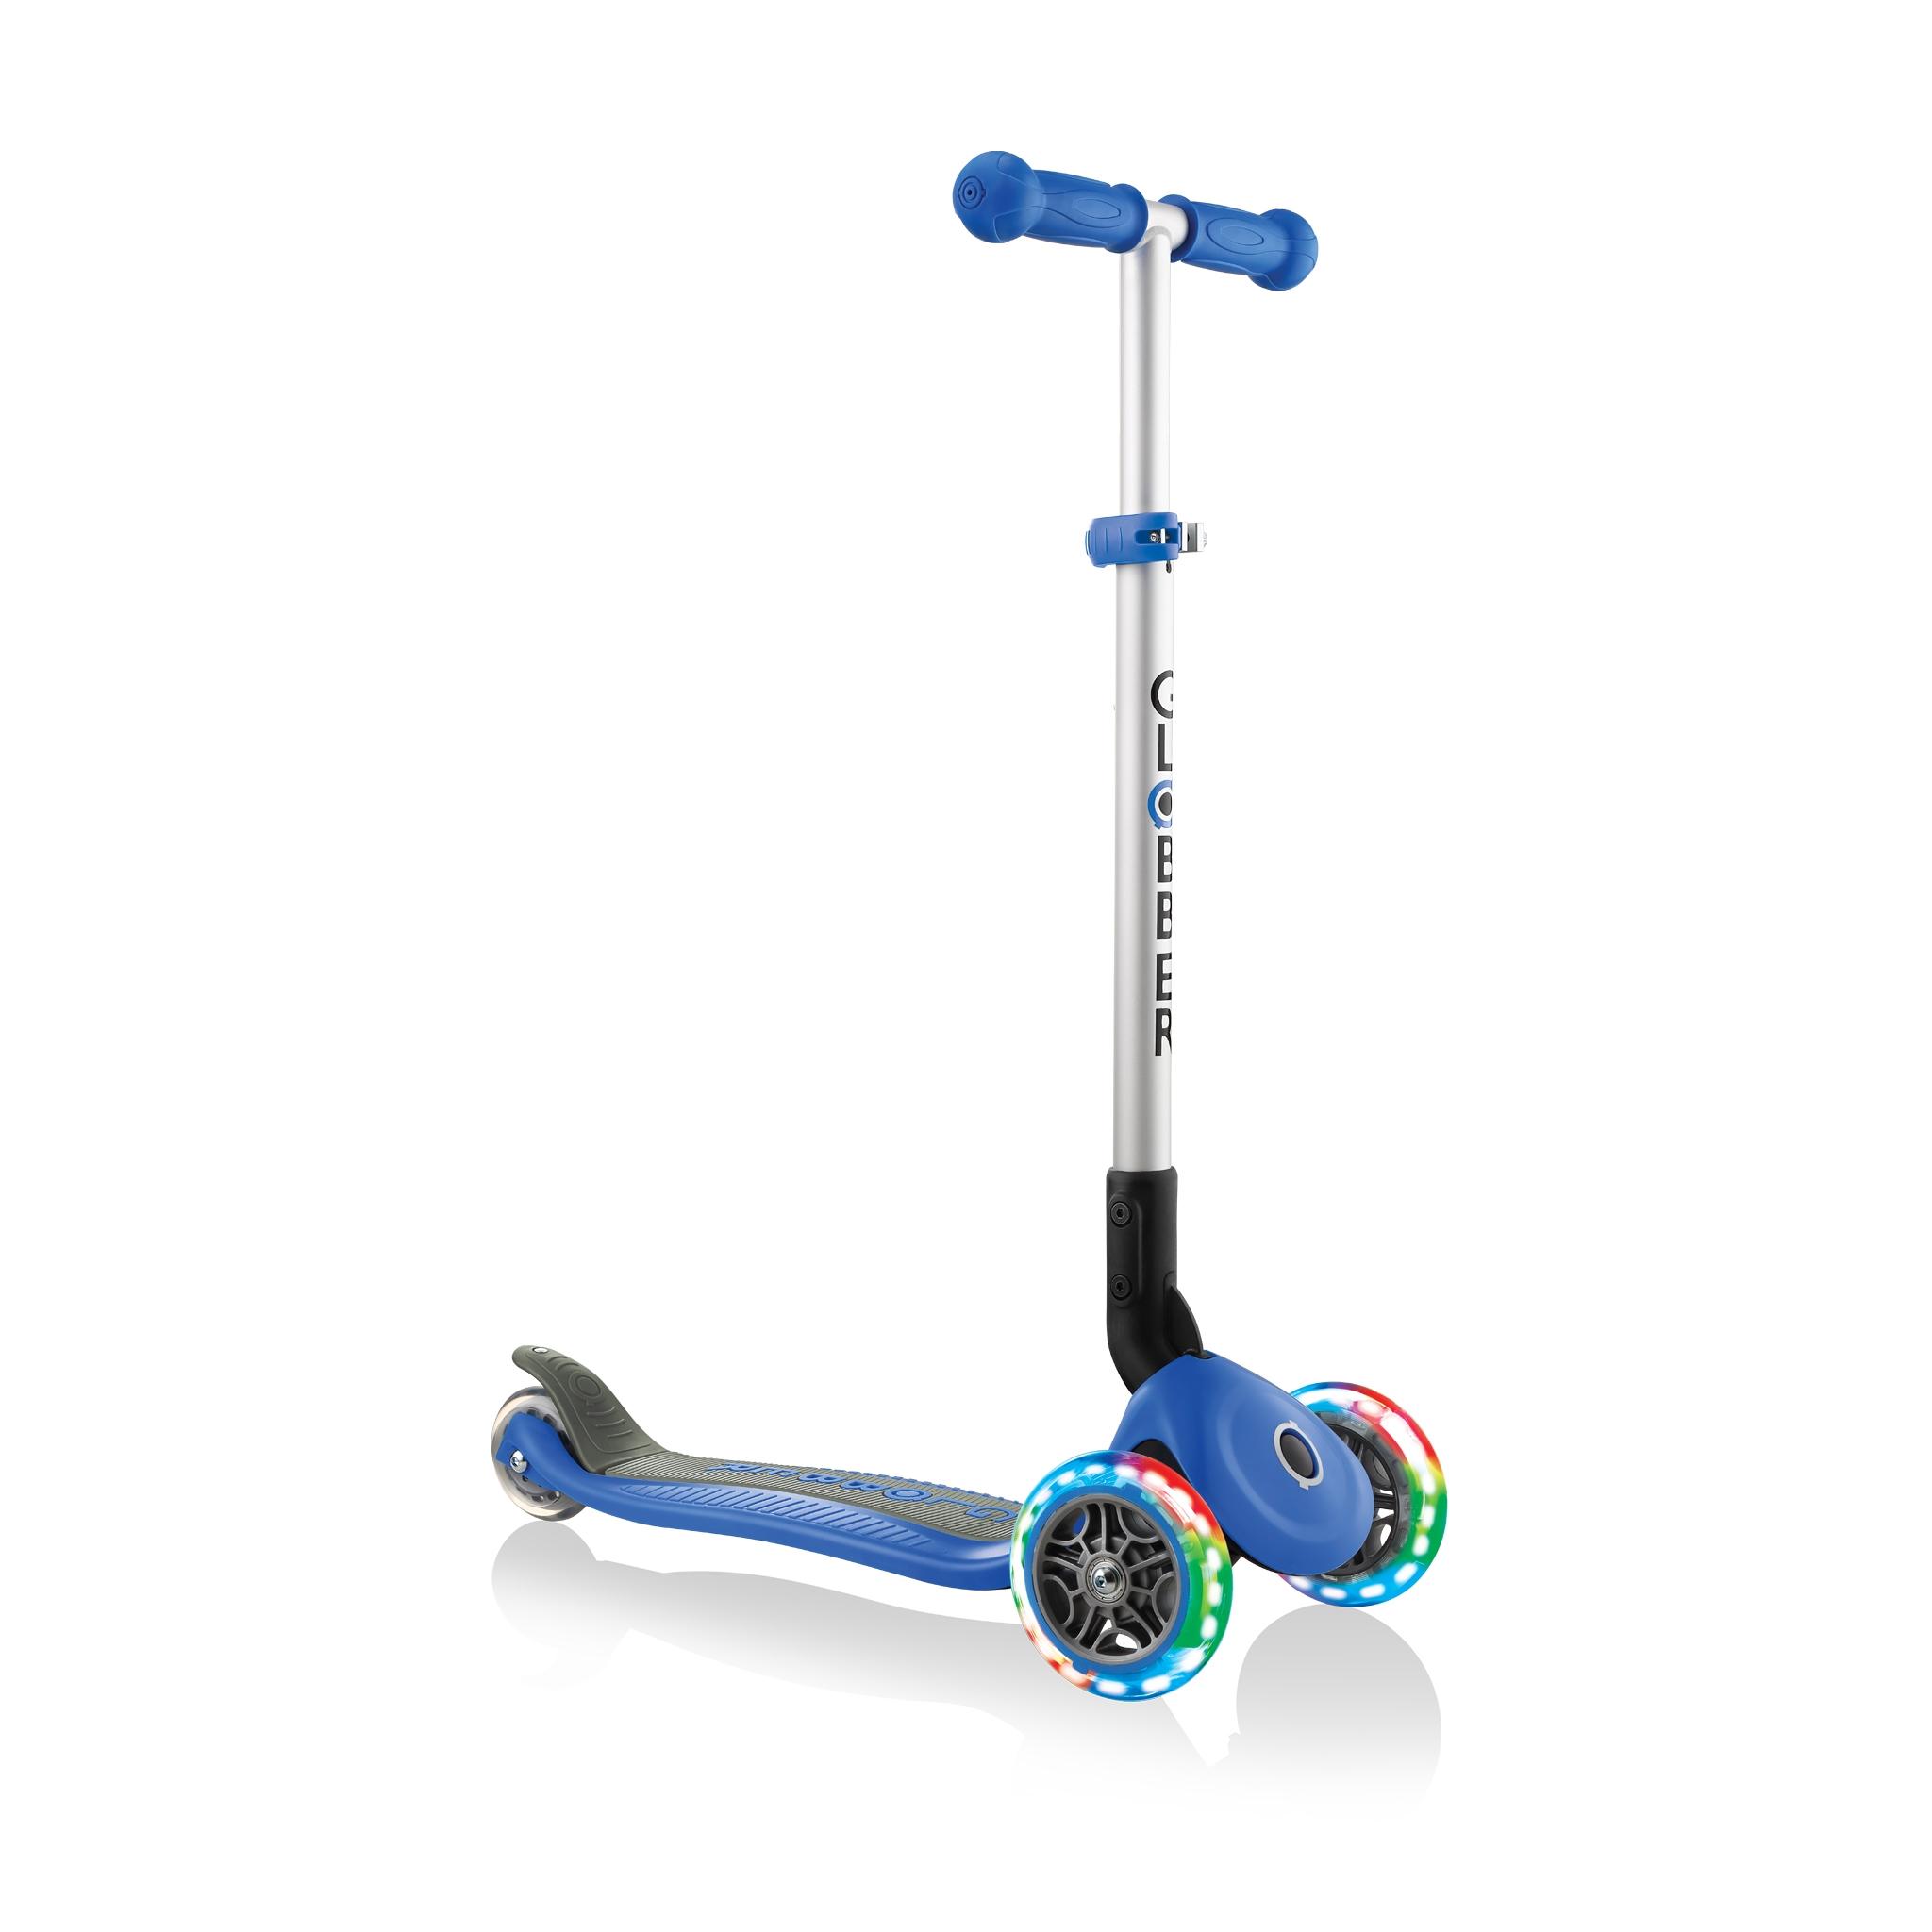 PRIMO-FOLDABLE-LIGHTS-3-wheel-foldable-scooter-light-up-scooter-for-kids-navy-blue 1